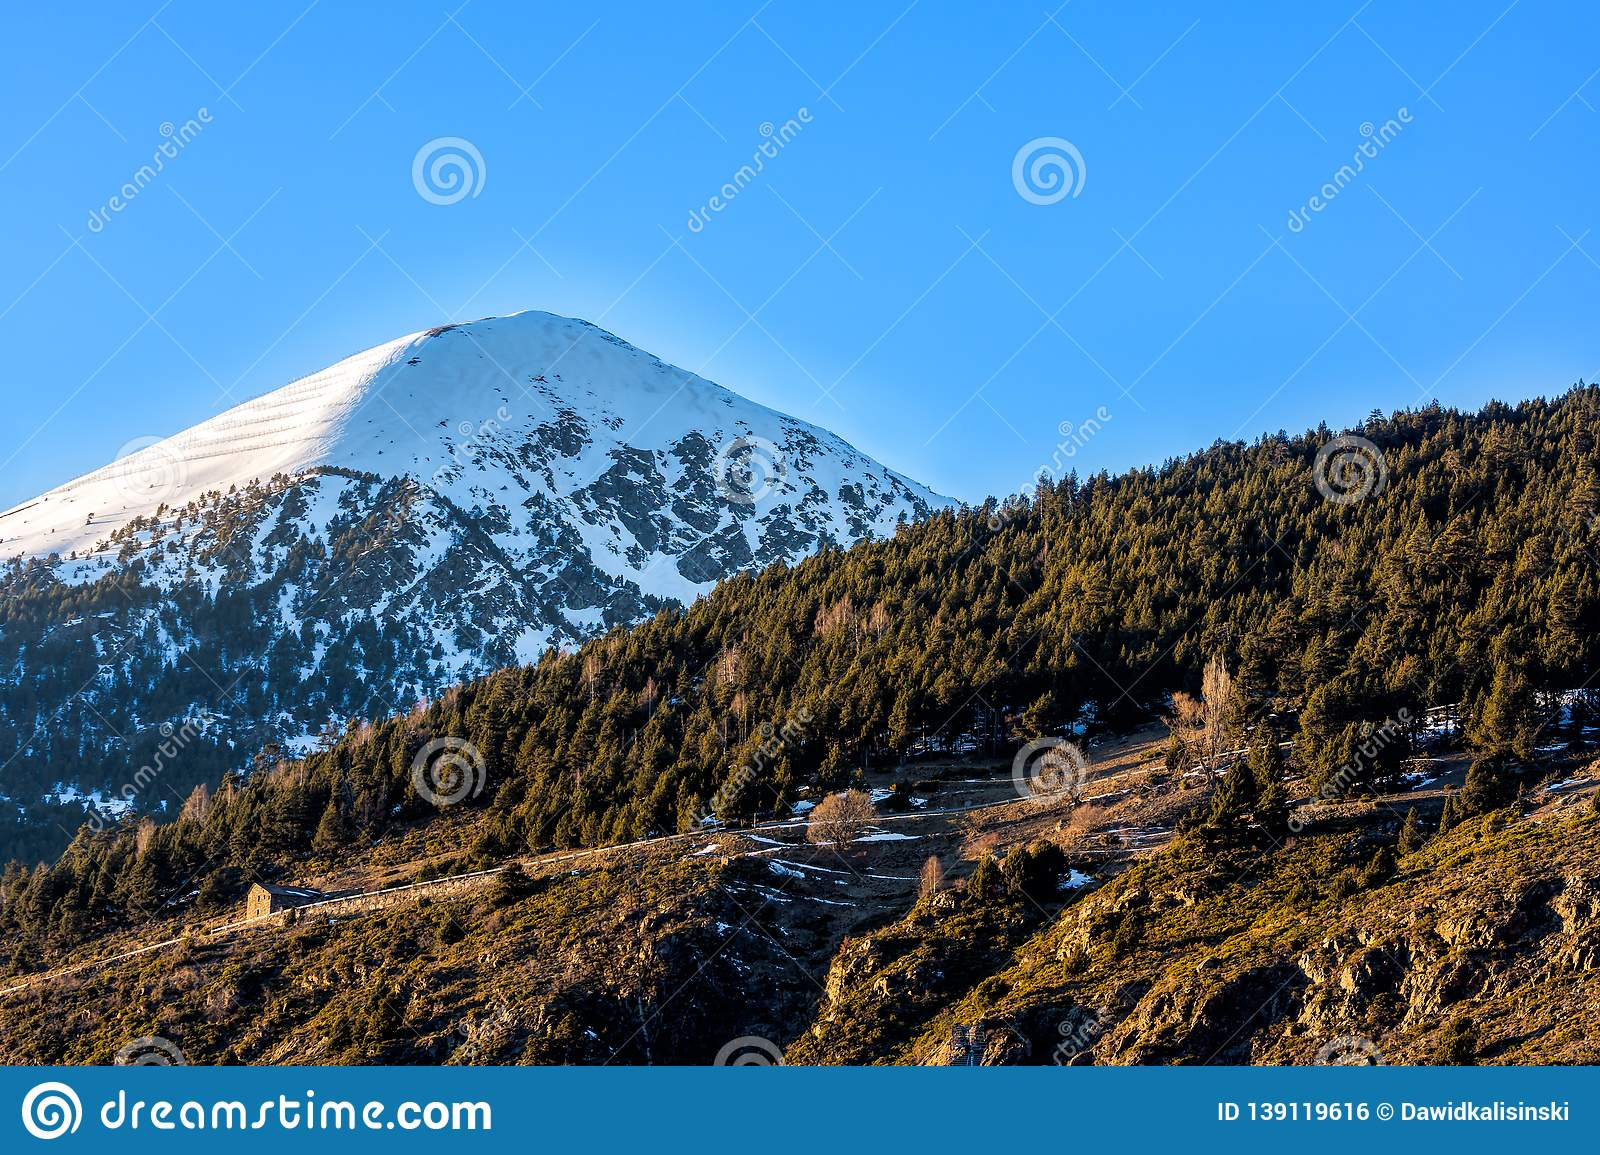 Single high mountain with pick in snow, blue sky and green forest in front, Andorra, Pyrenees